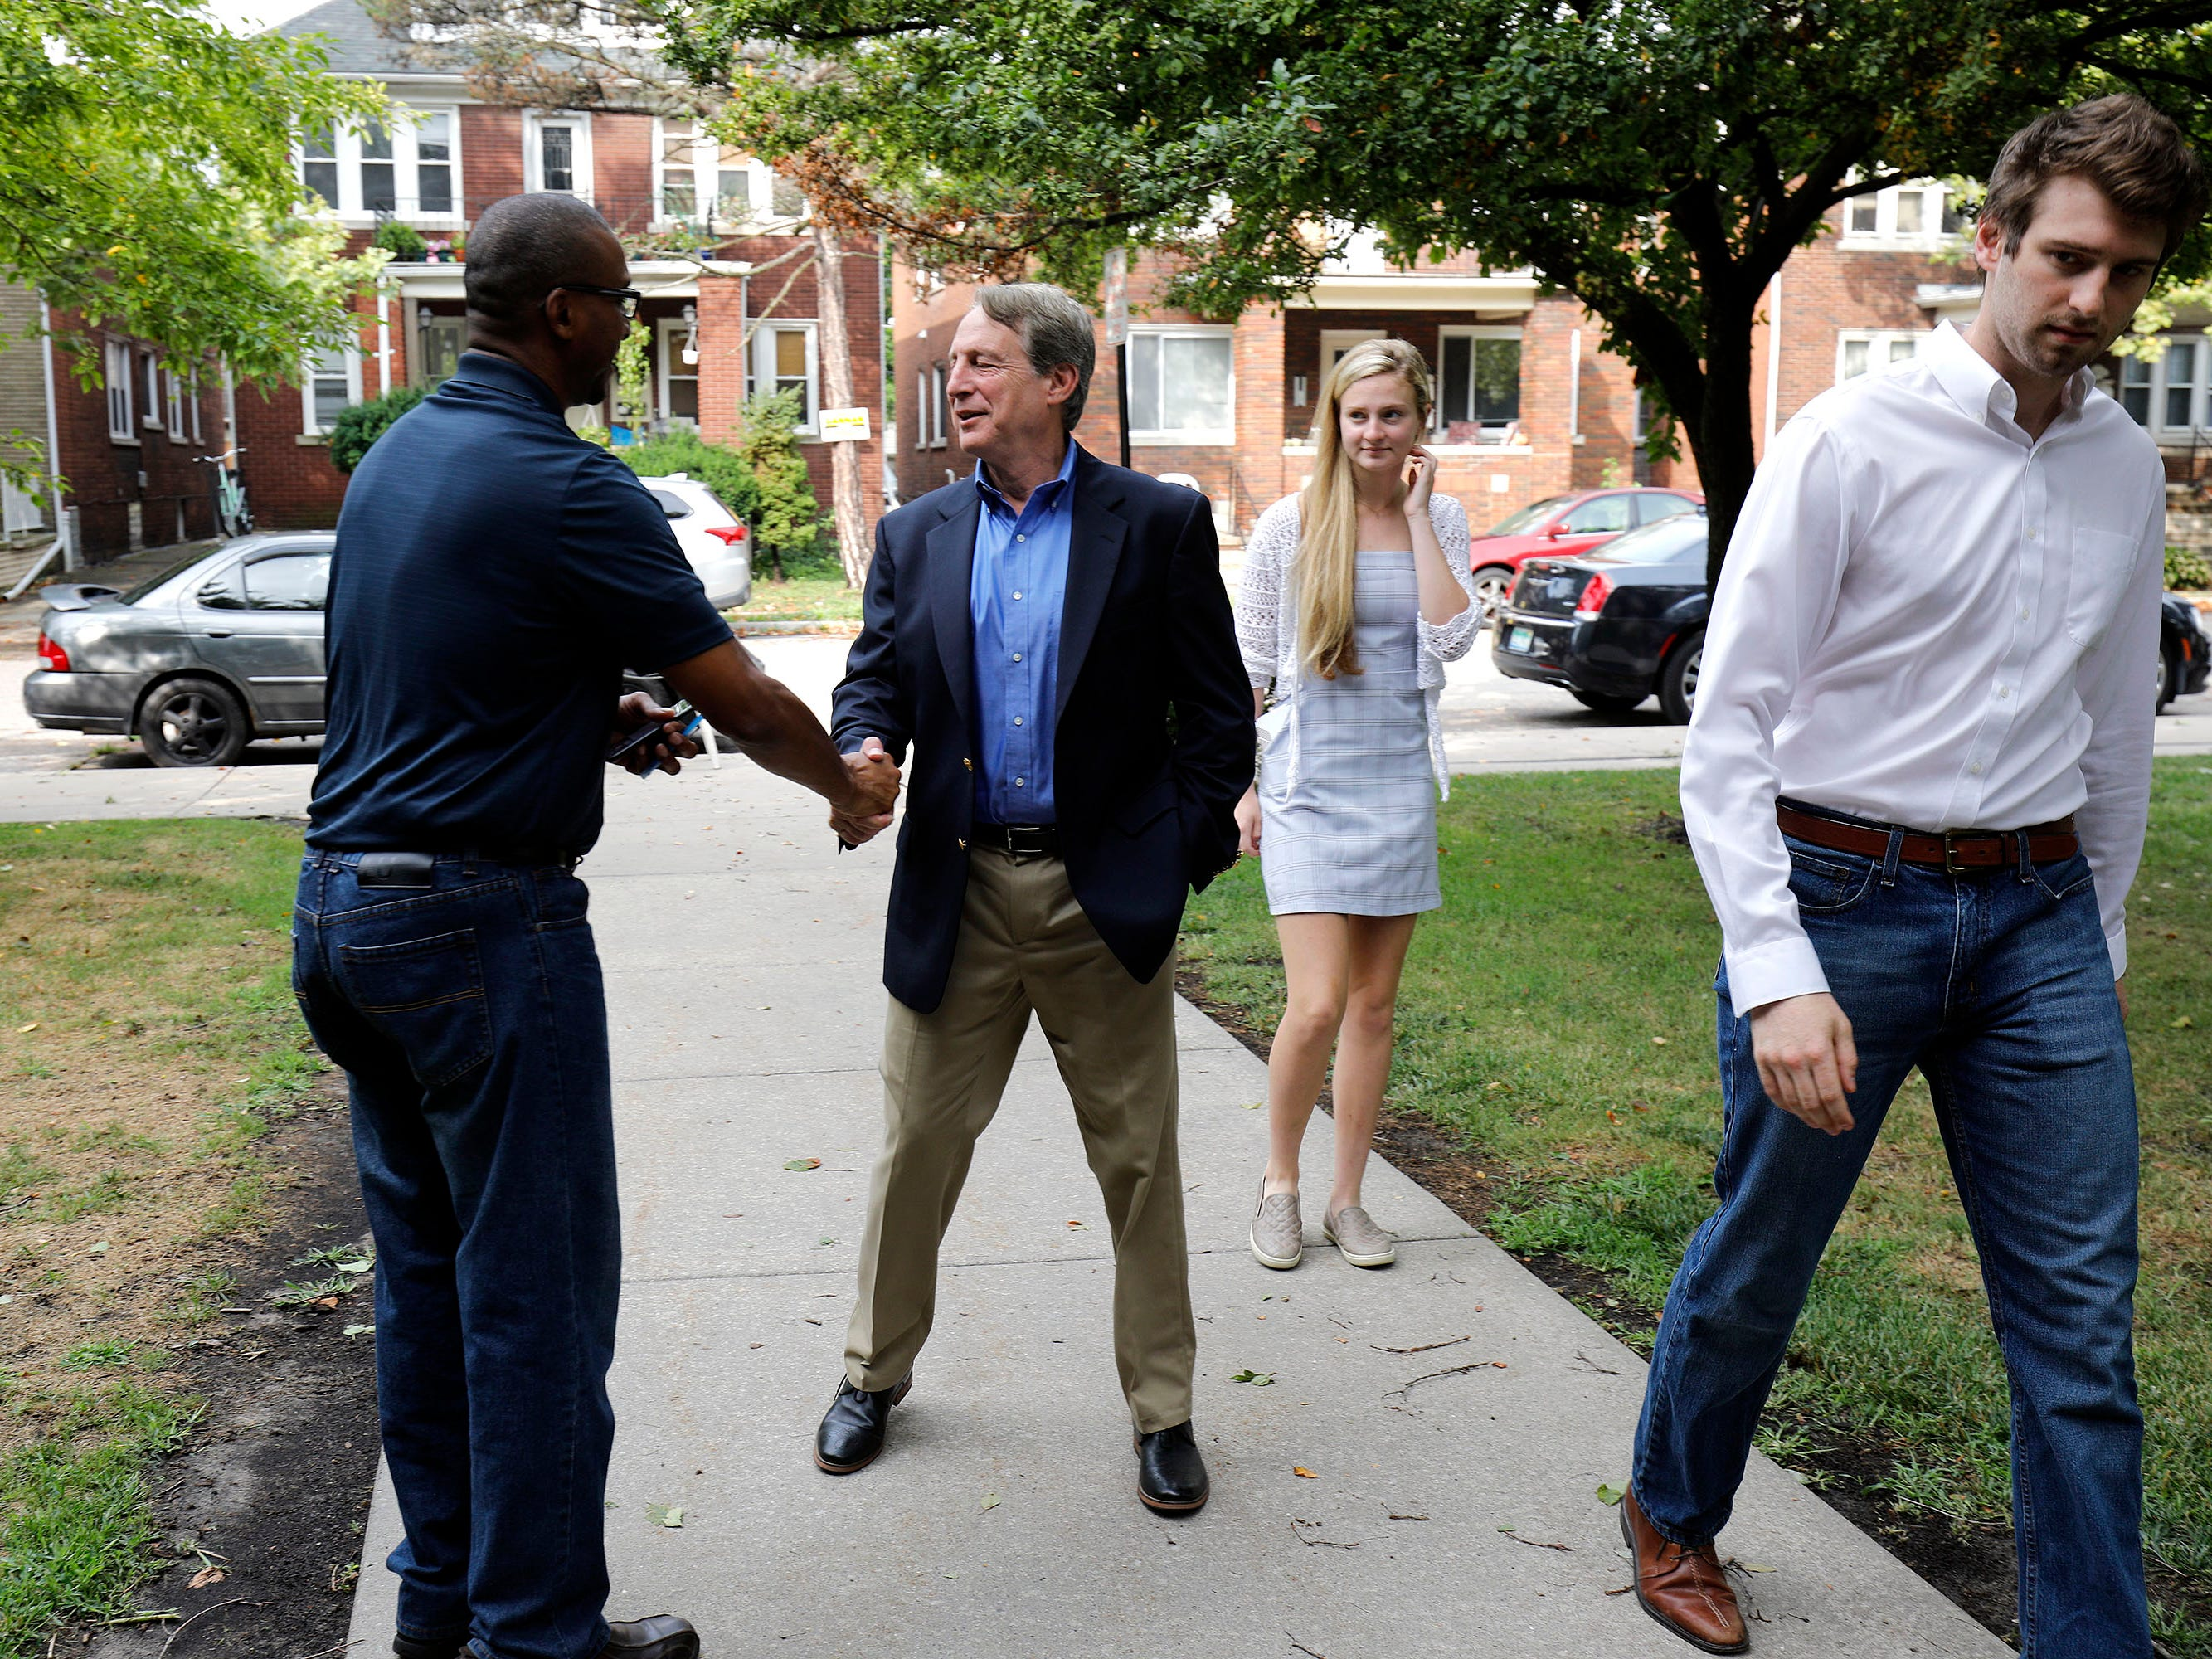 Sandy Pensler (center), Michigan Republican candidate for the U.S. Senate, greets a voter as he walks into his voting precinct accompanied by his son Jonathon and daughter Natasha to votes in the Michigan Primary election at Trombly School August 7, 2018 in Grosse Pointe Park, Michigan. Pensler's opponent, Republican John James, has received President Donald Trump's endorsement.